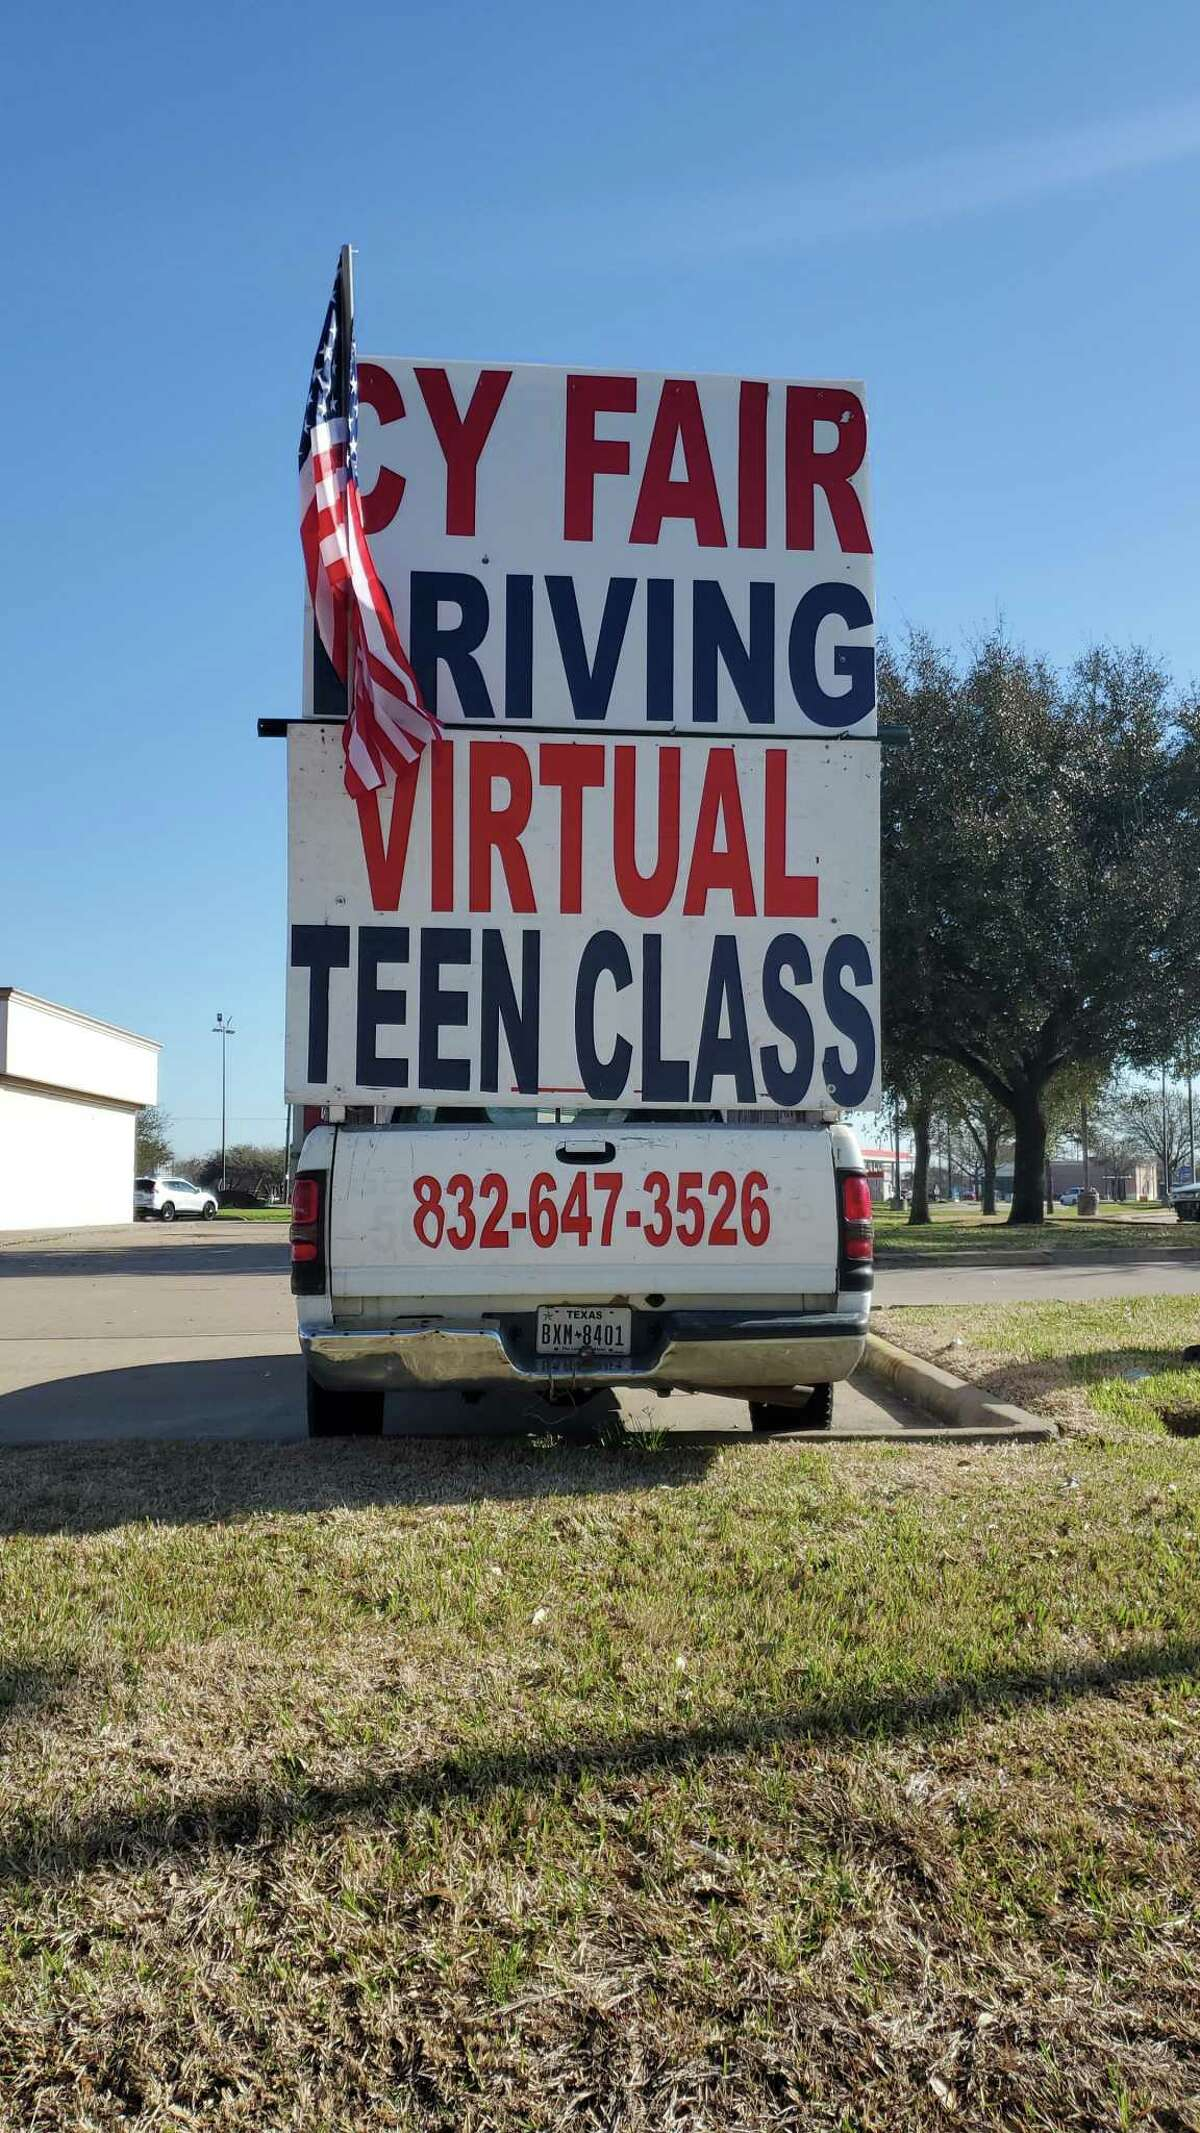 Cy Fair Driving School has locations in the Houston and Dallas areas.